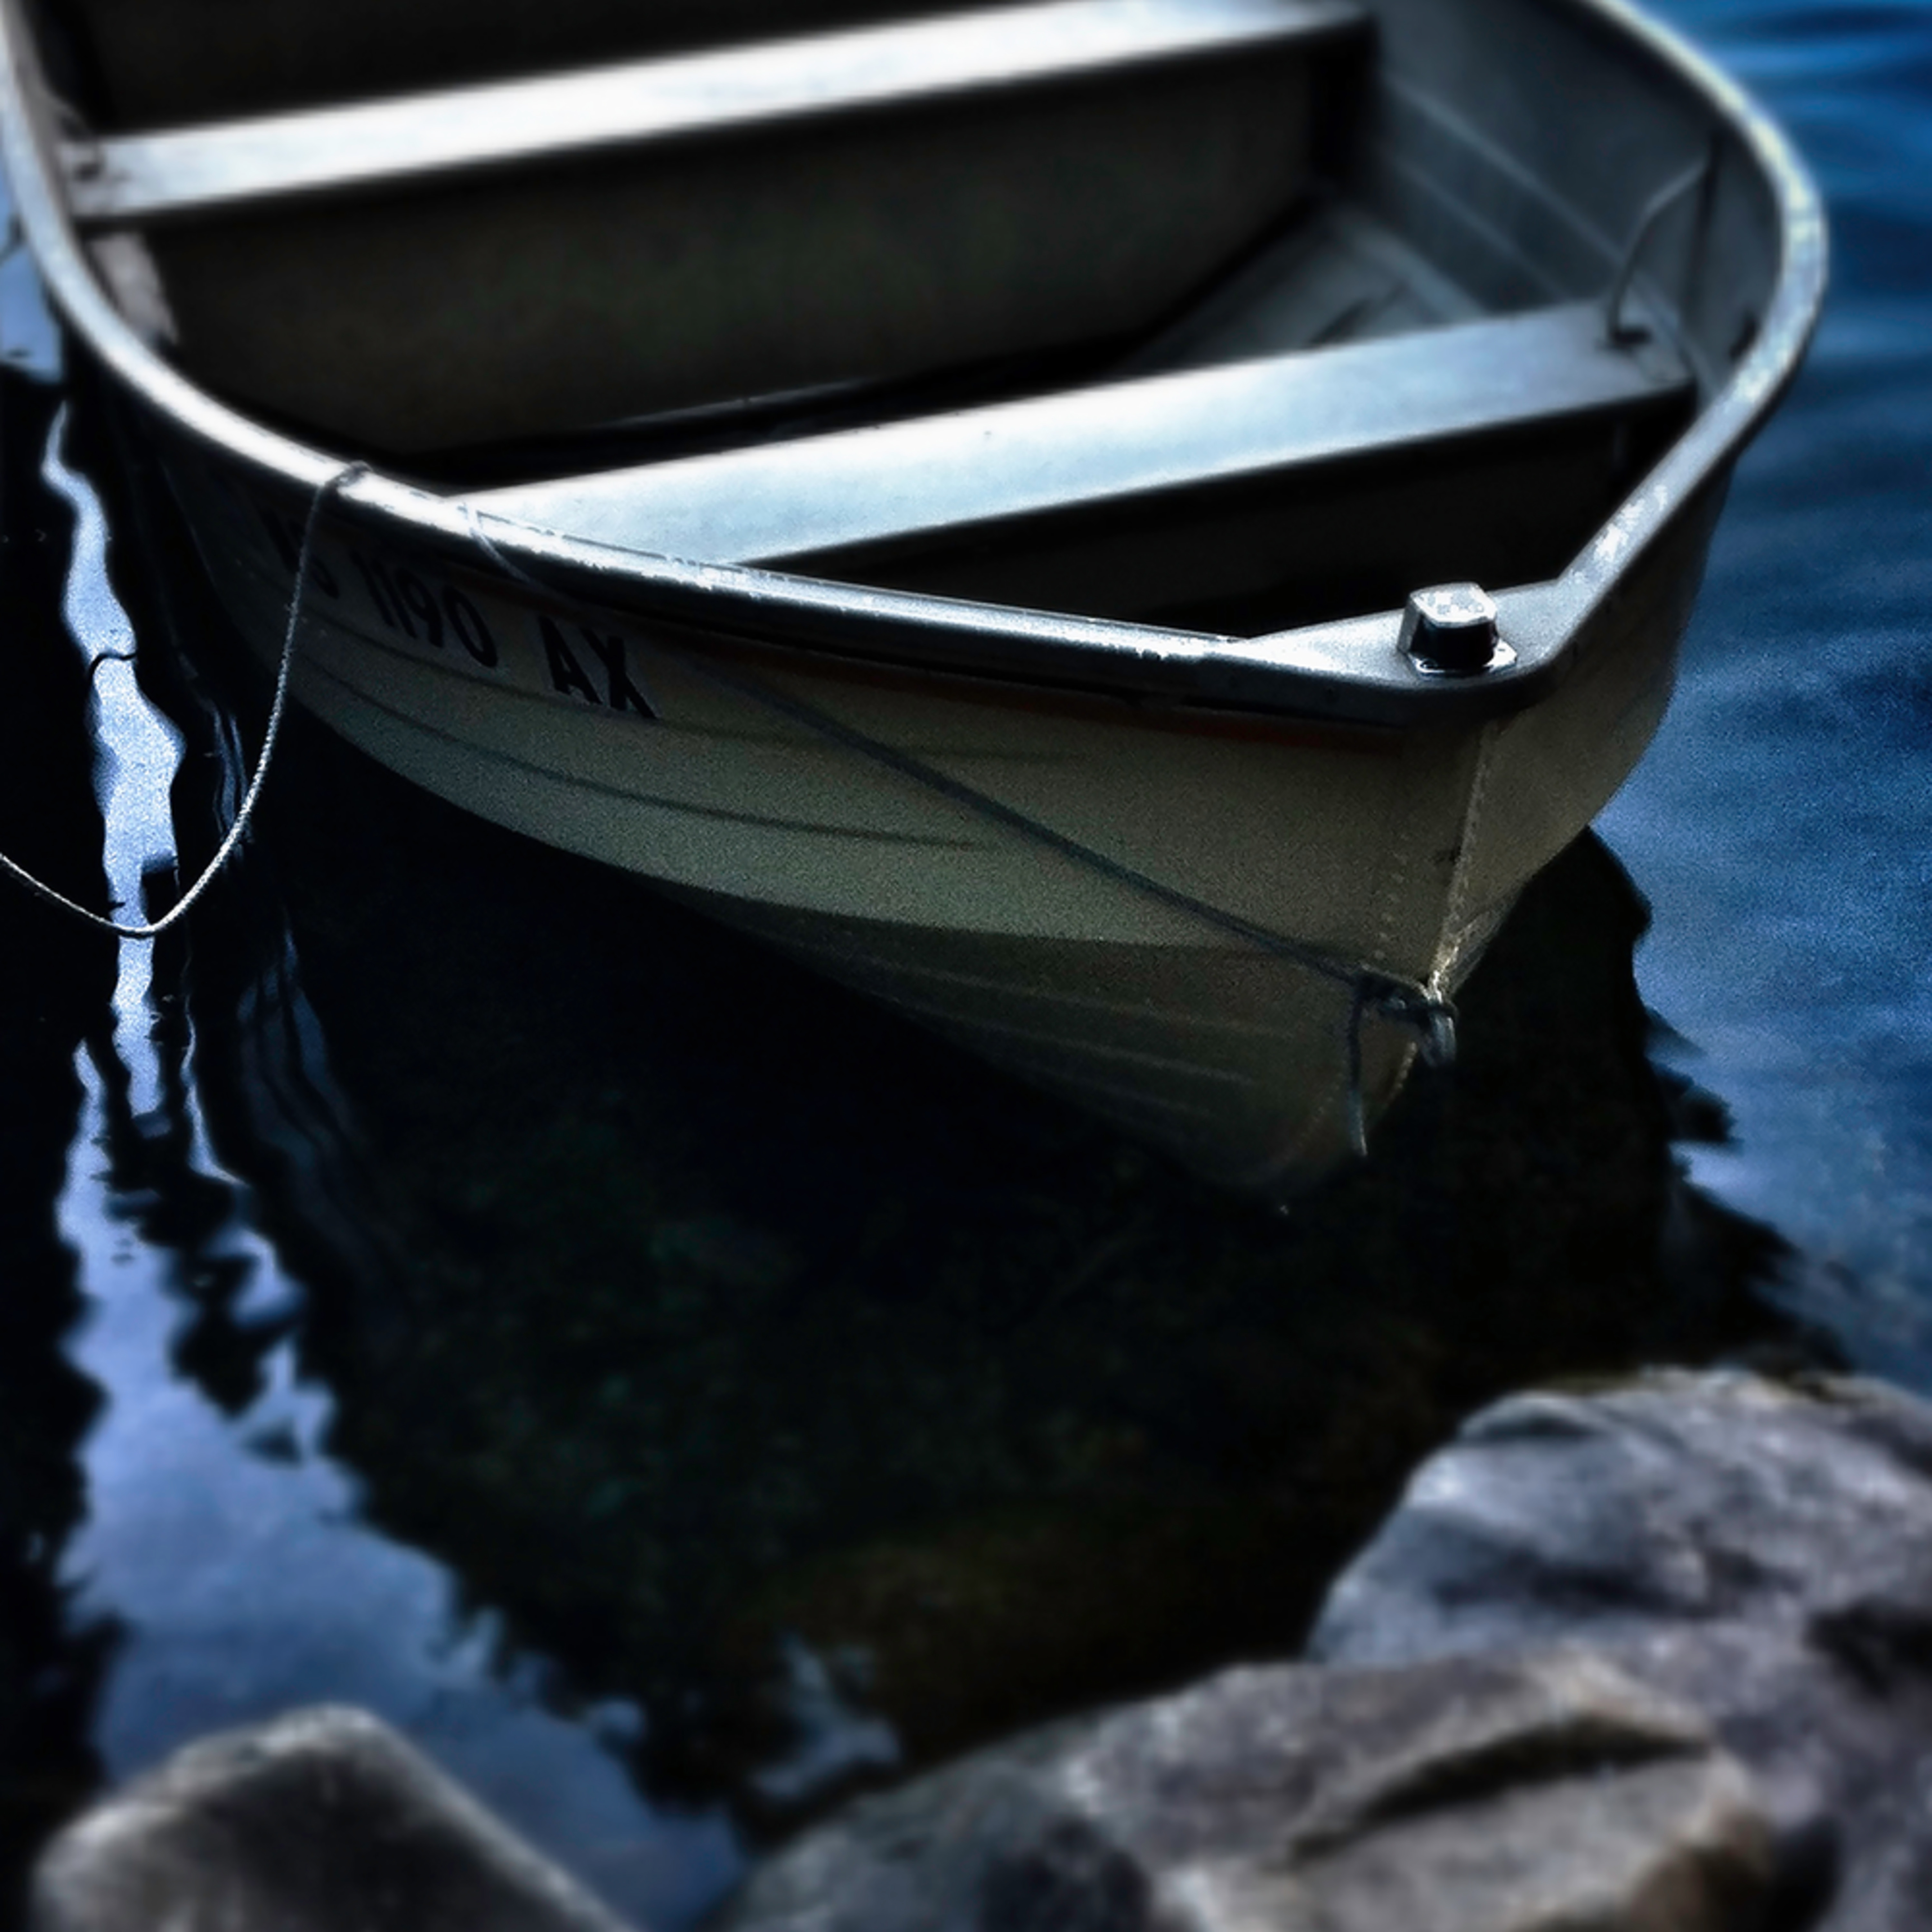 Rowboat on the rocks wd7nt1